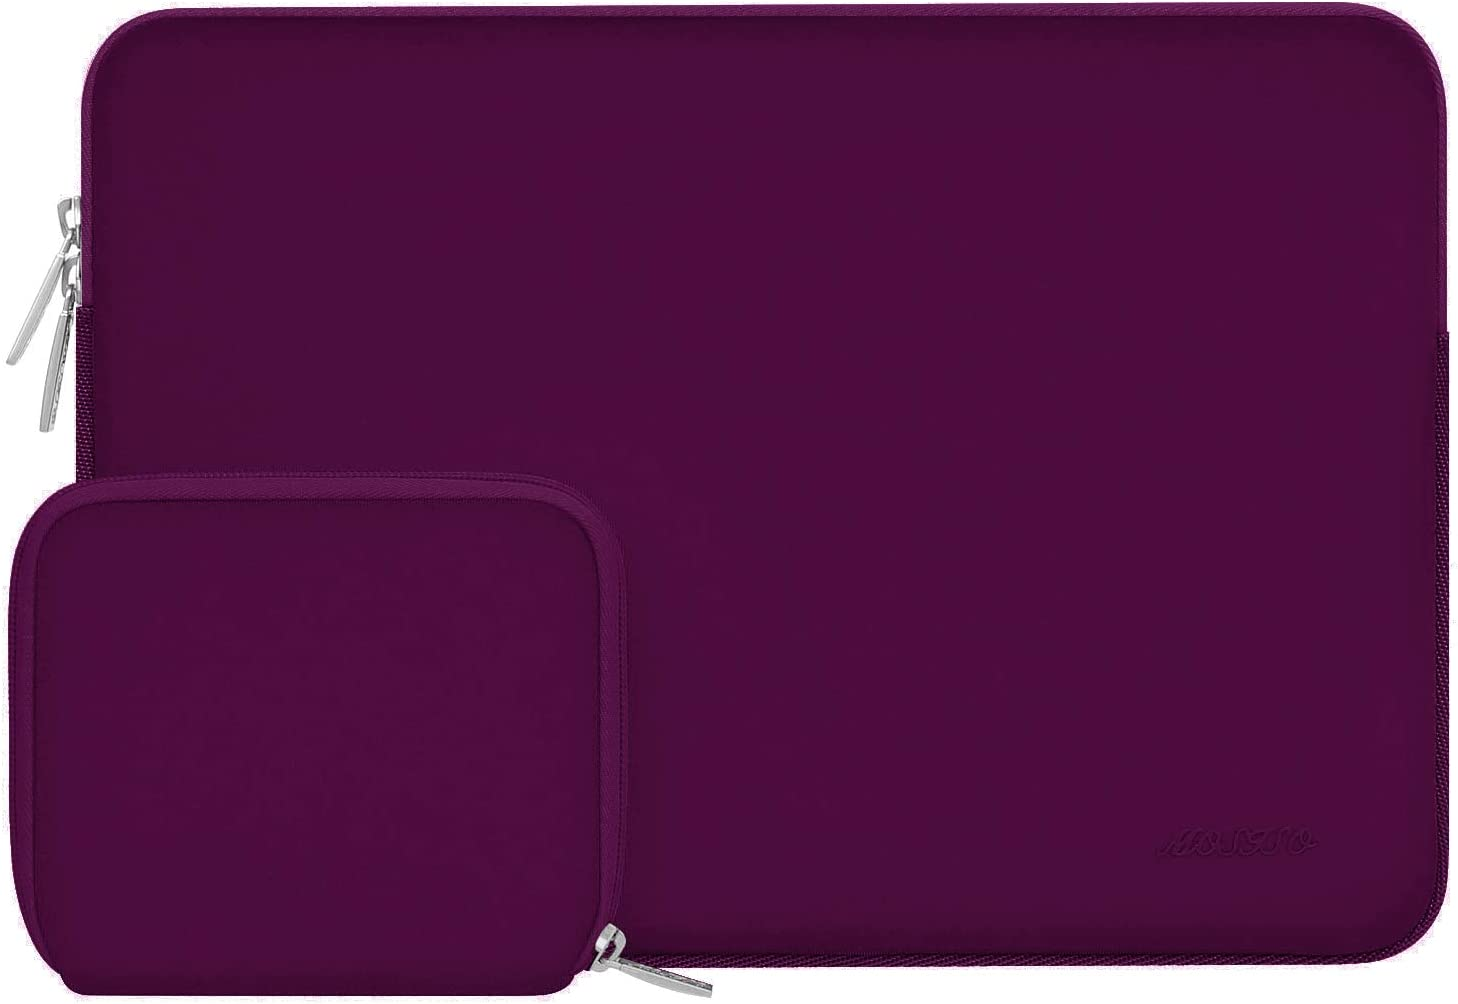 MOSISO Laptop Sleeve Compatible with 13-13.3 inch MacBook Pro, MacBook Air, Notebook Computer, Water Repellent Neoprene Bag with Small Case, Magenta Purple